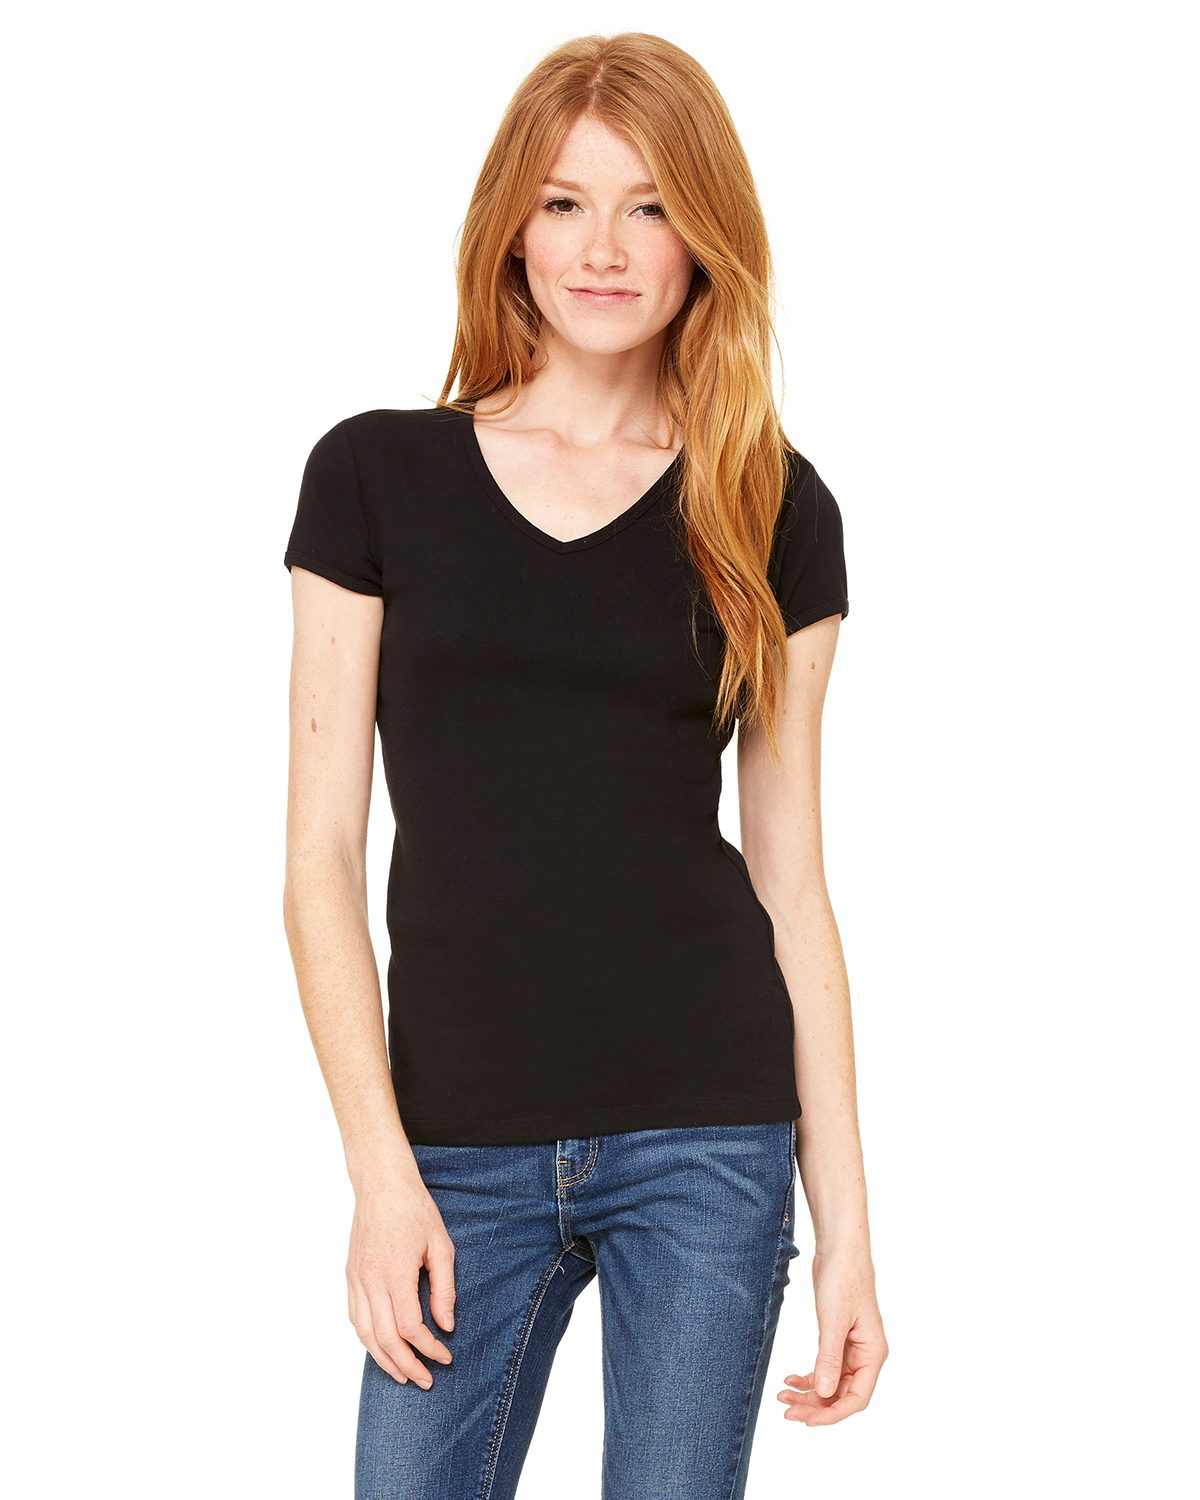 Bella + Canvas 1005 - Women's Baby Rib V-Neck Tee